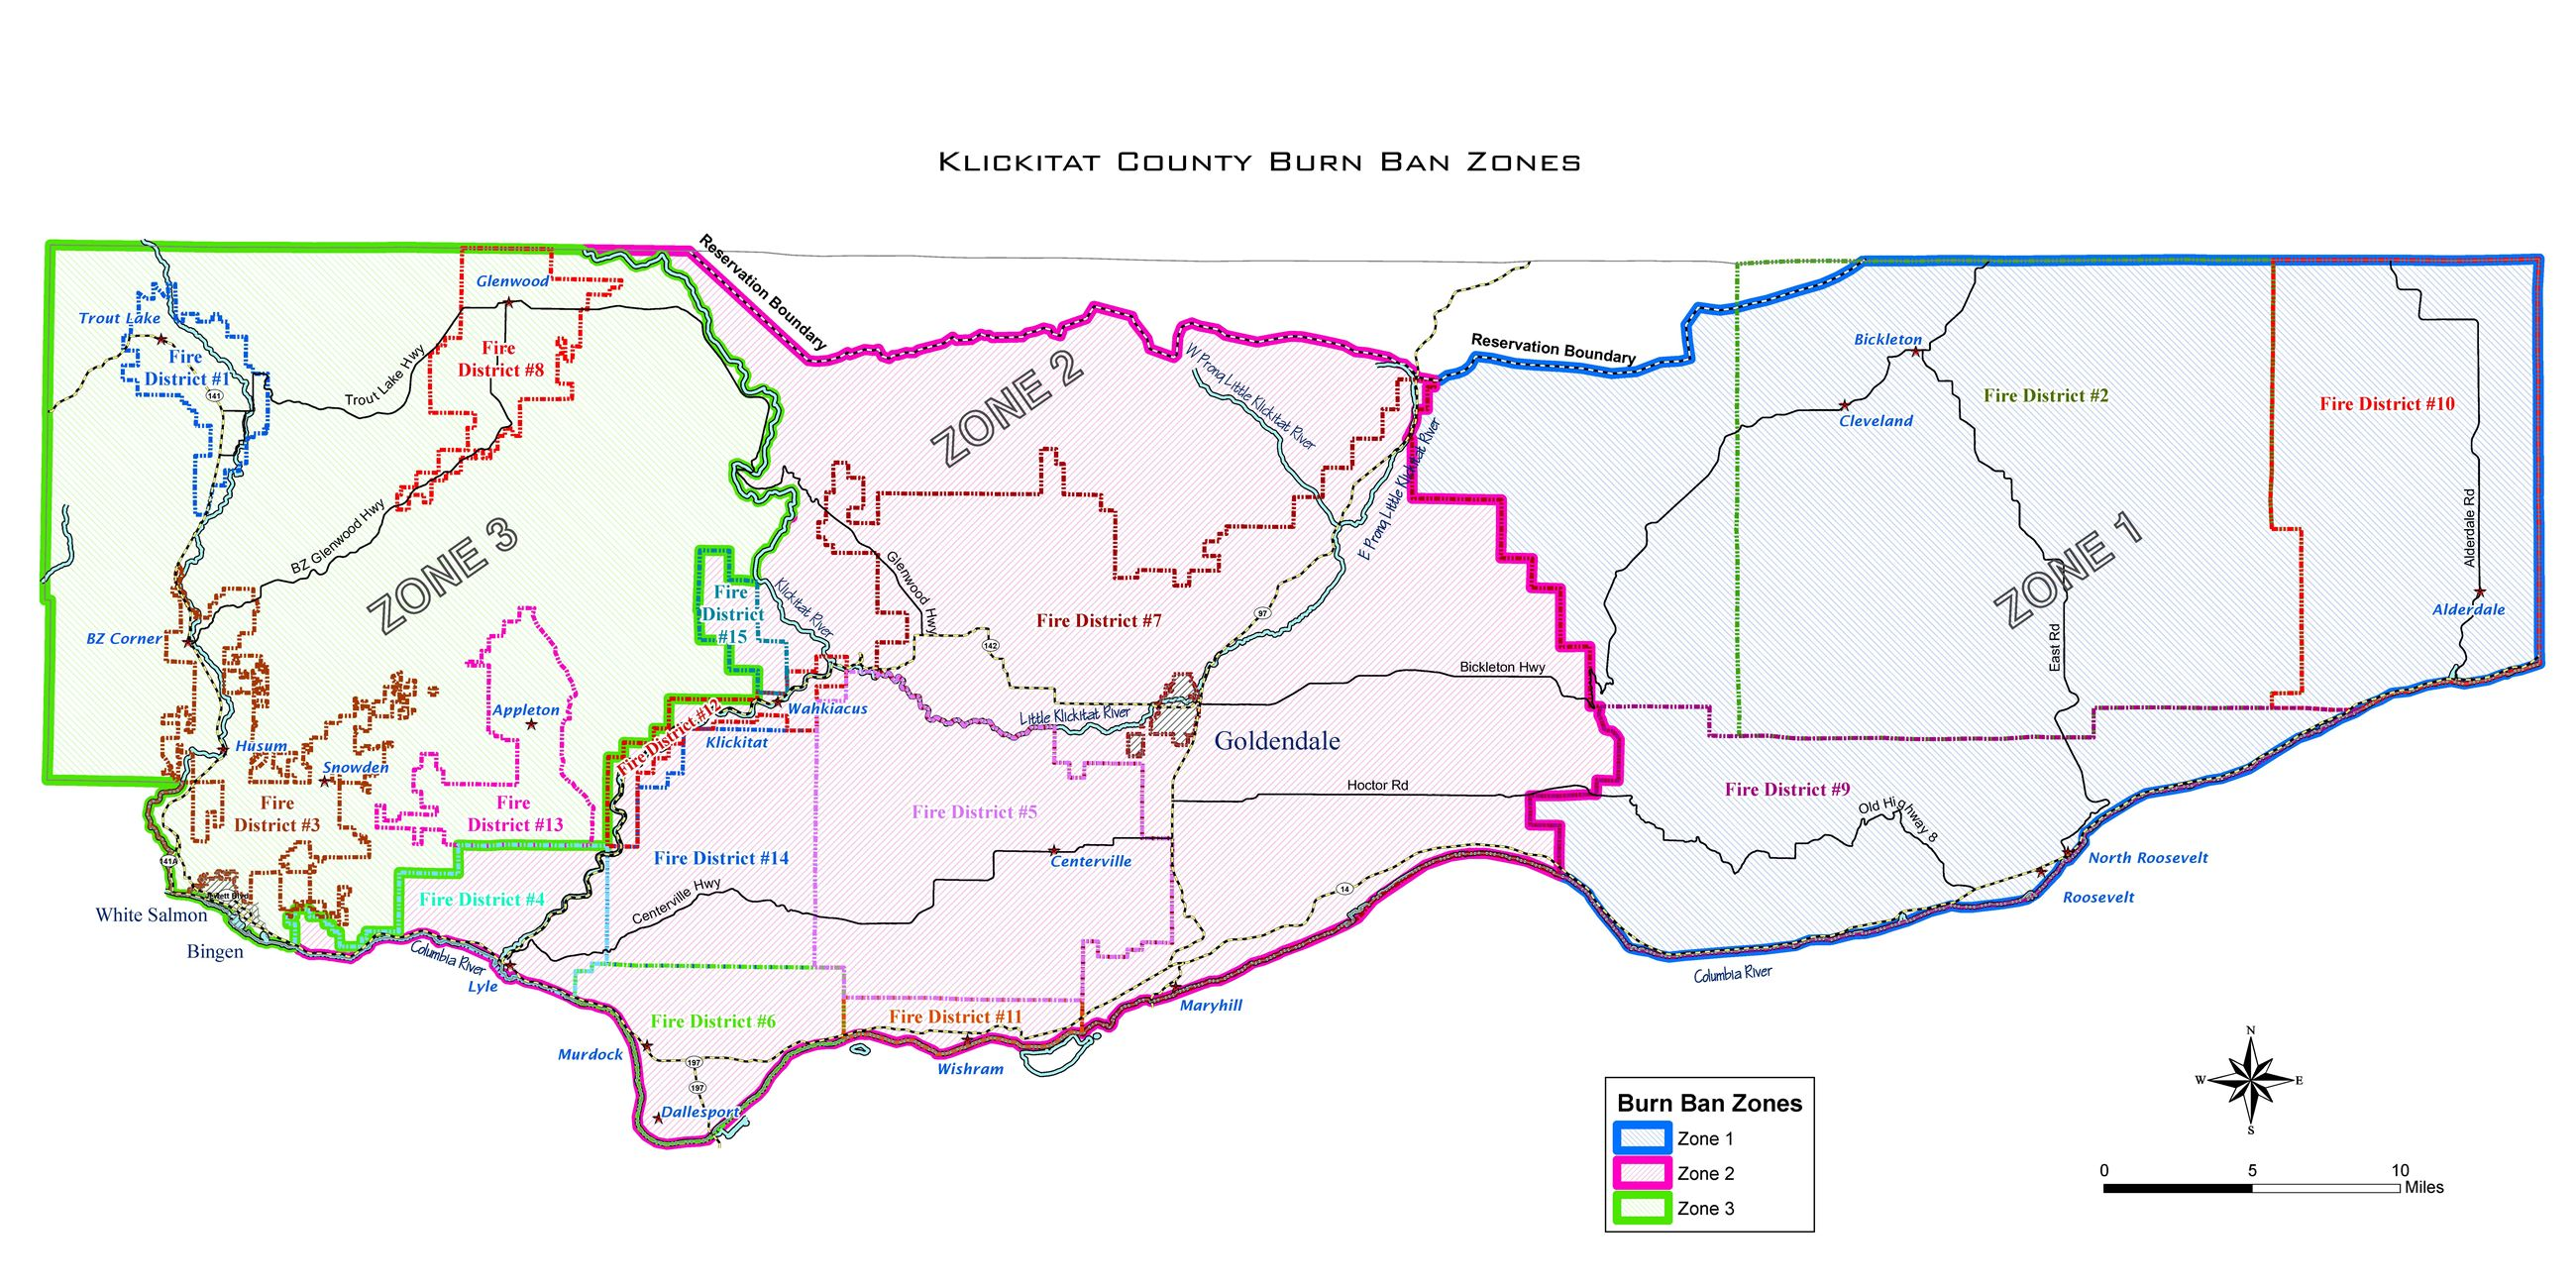 All County Burn Ban Zones Map